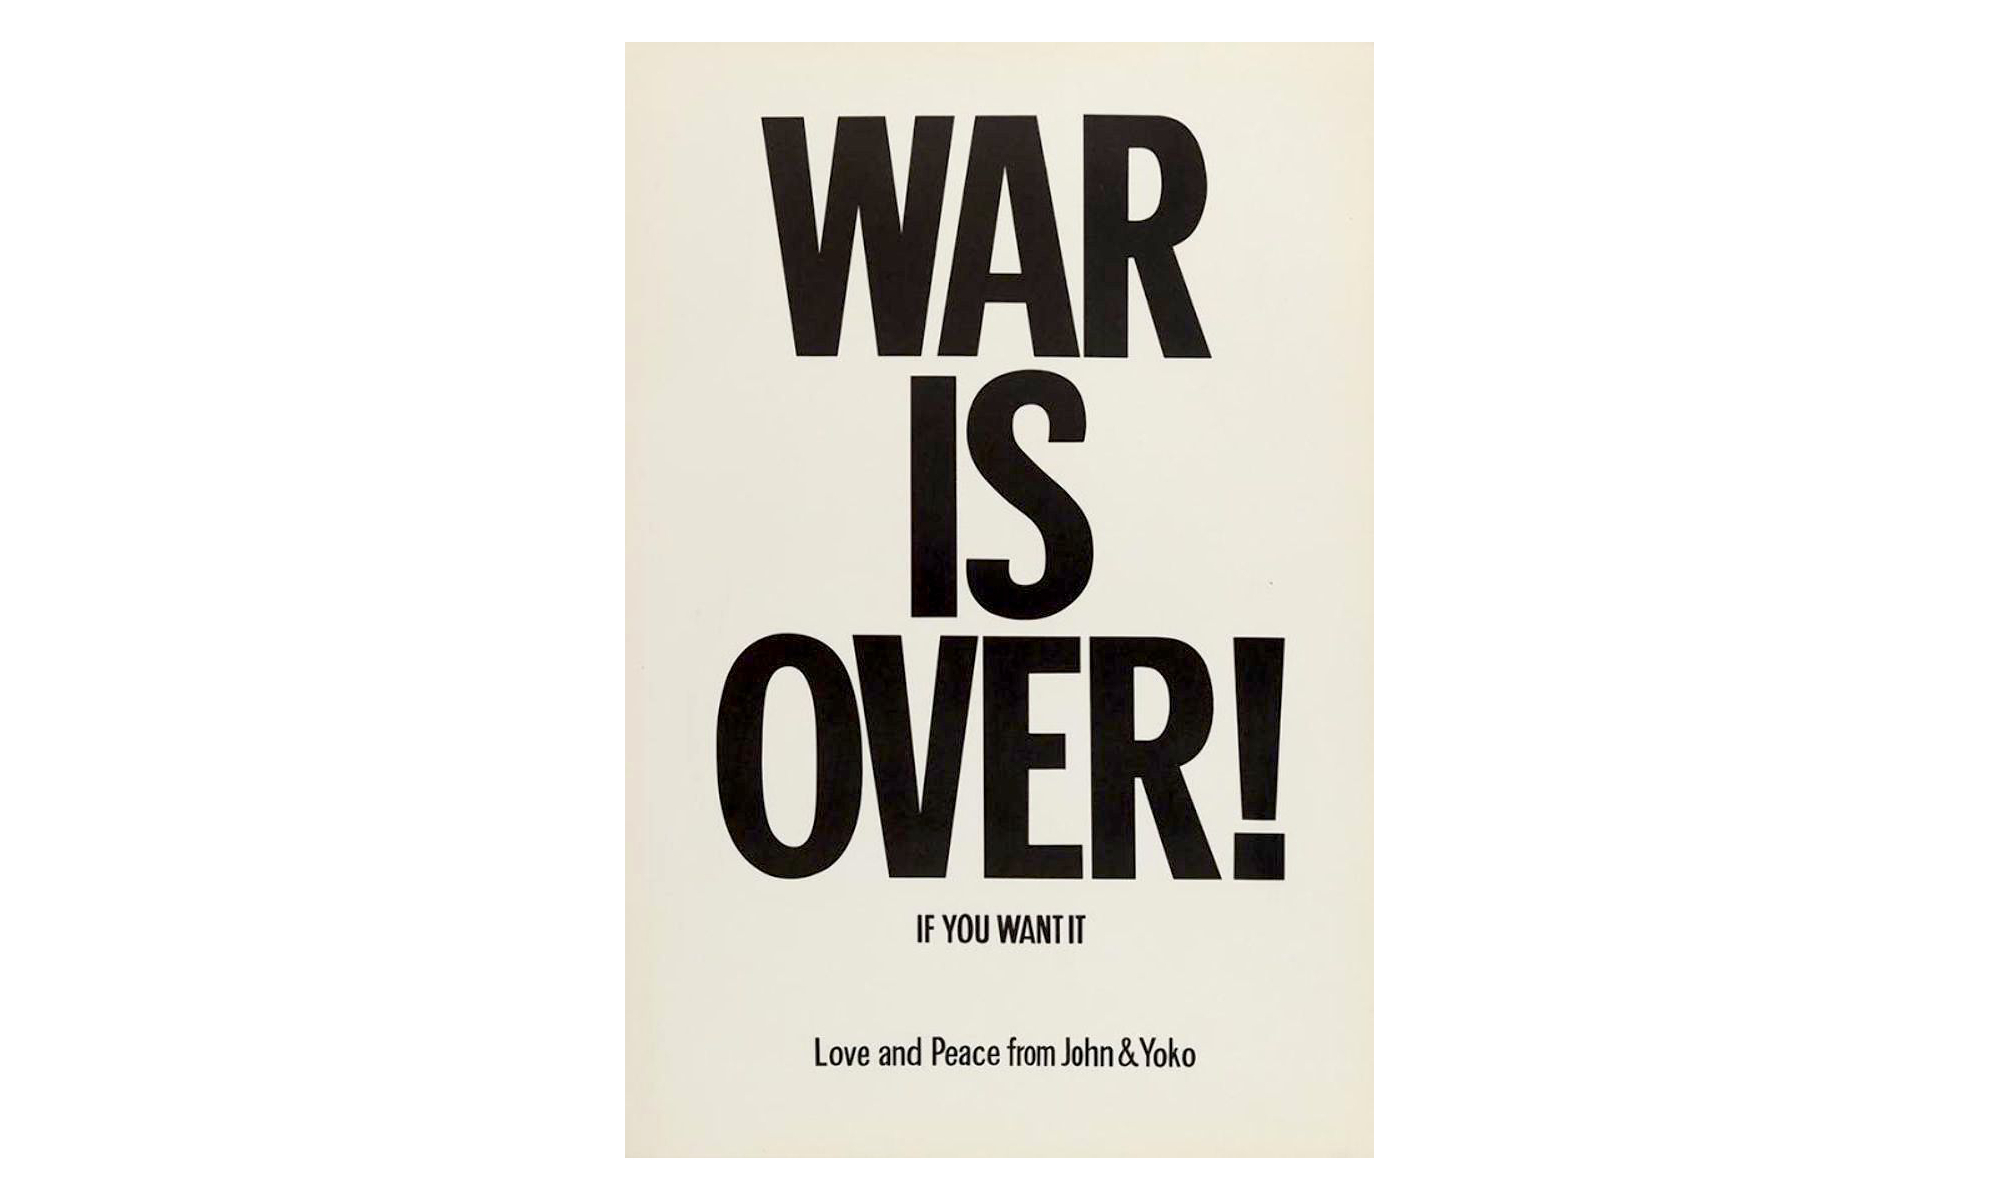 war is over poster